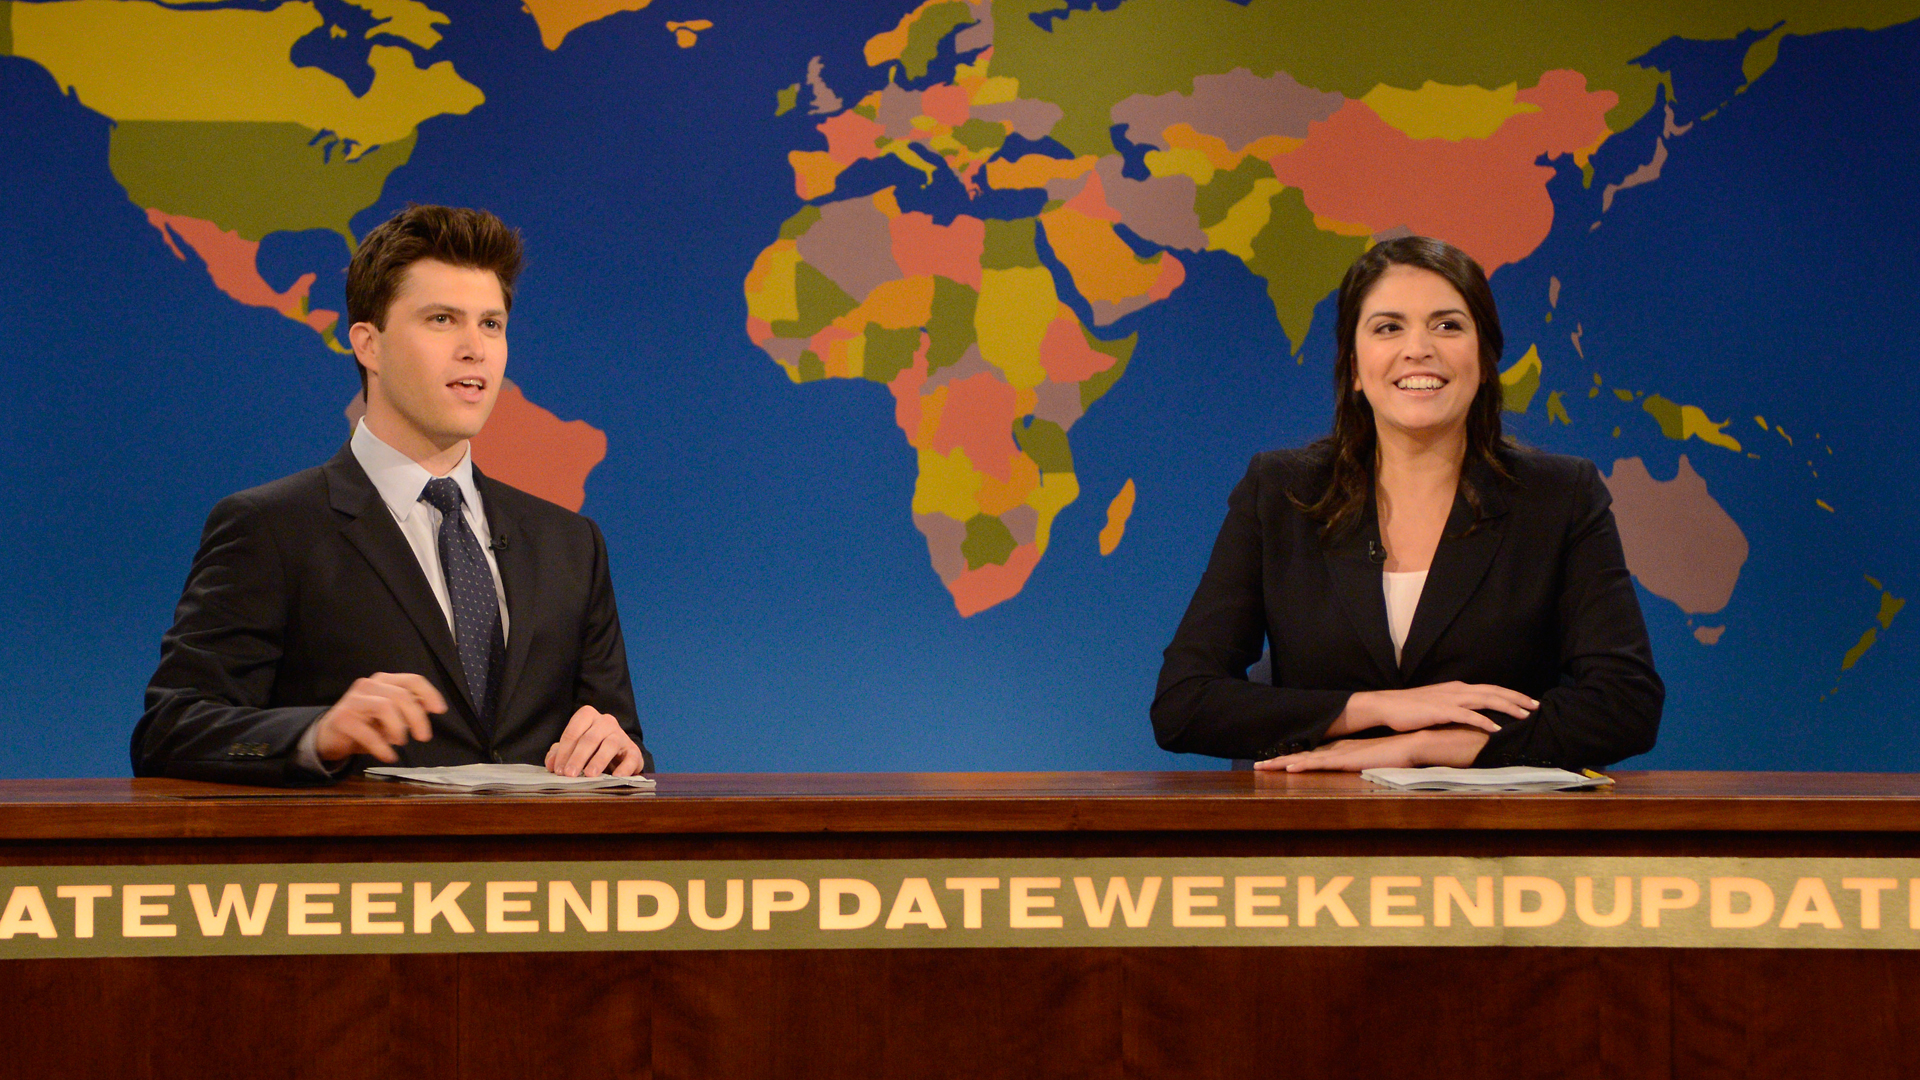 Watch Weekend Update: Headlines from 5/17/14 From Saturday ...